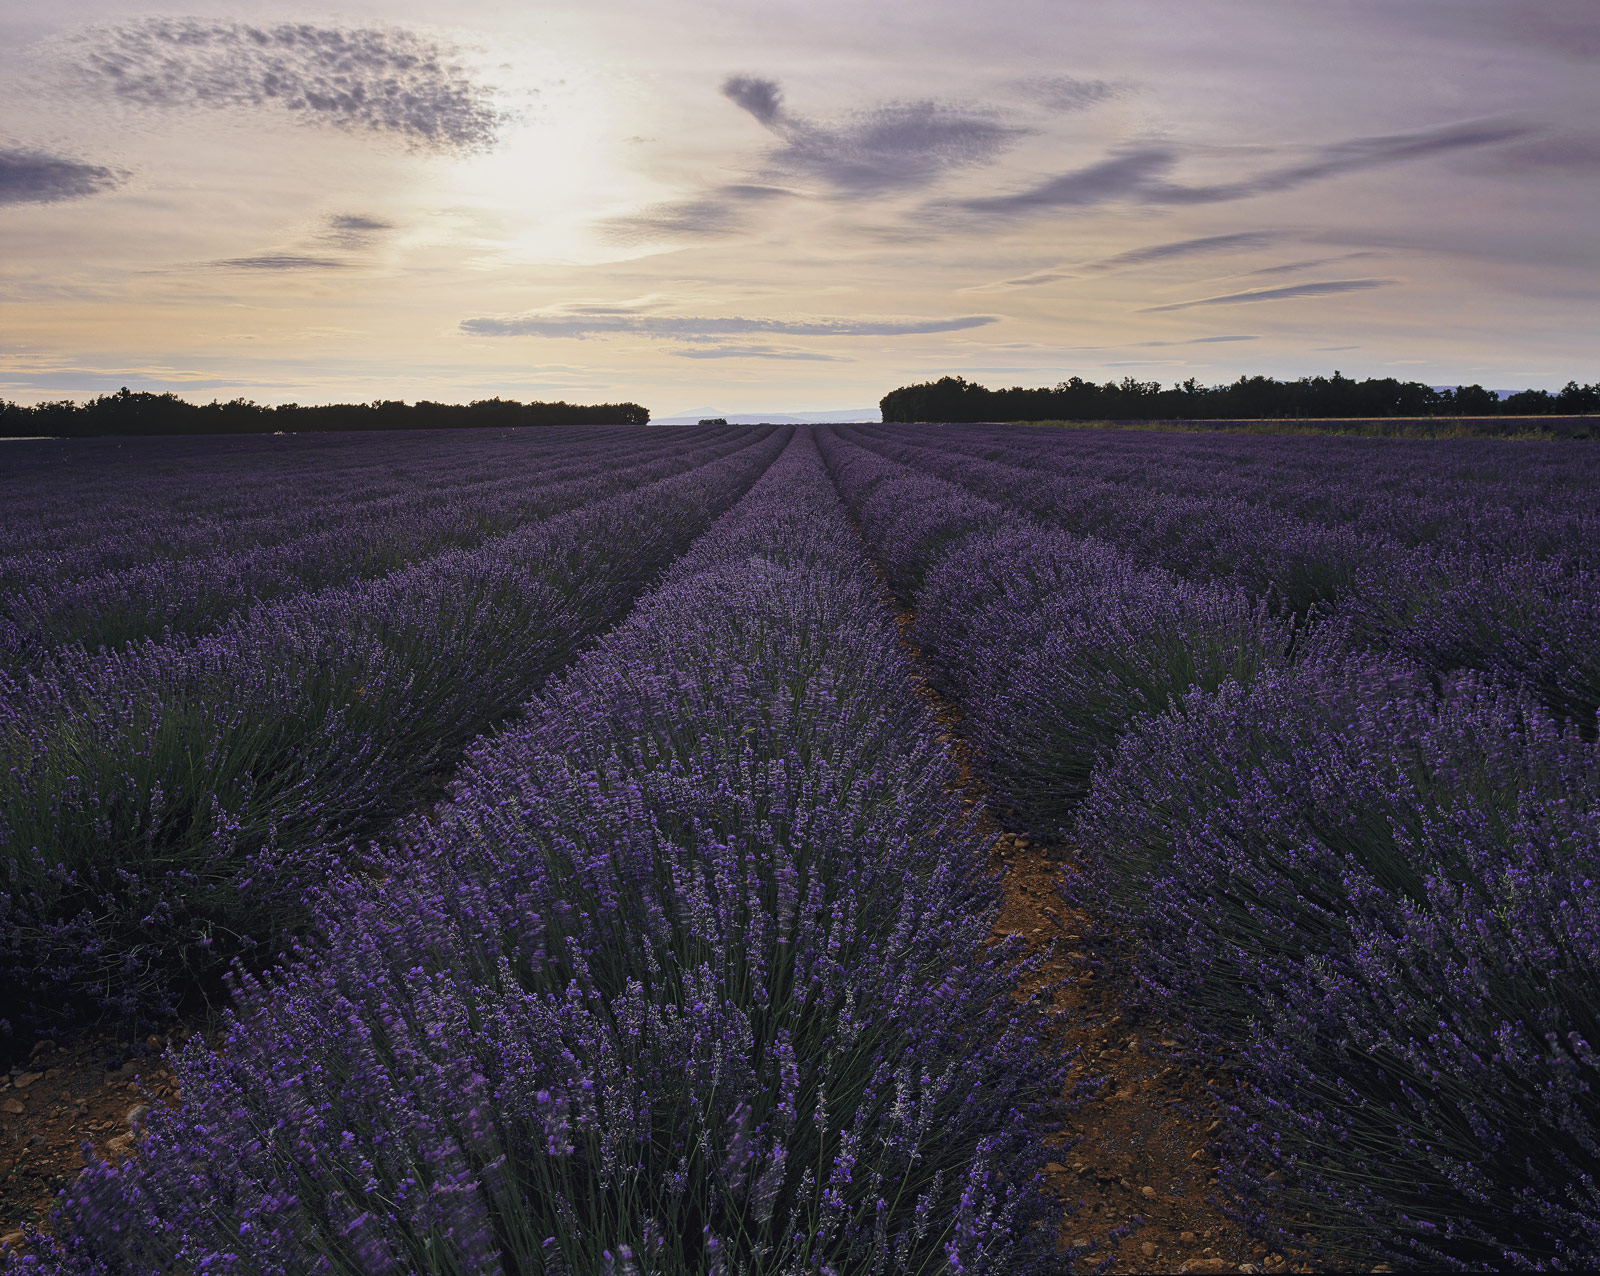 Valensole has always struck me as being the finest place to see fields of perfectly aligned stems of lavender. I try to...